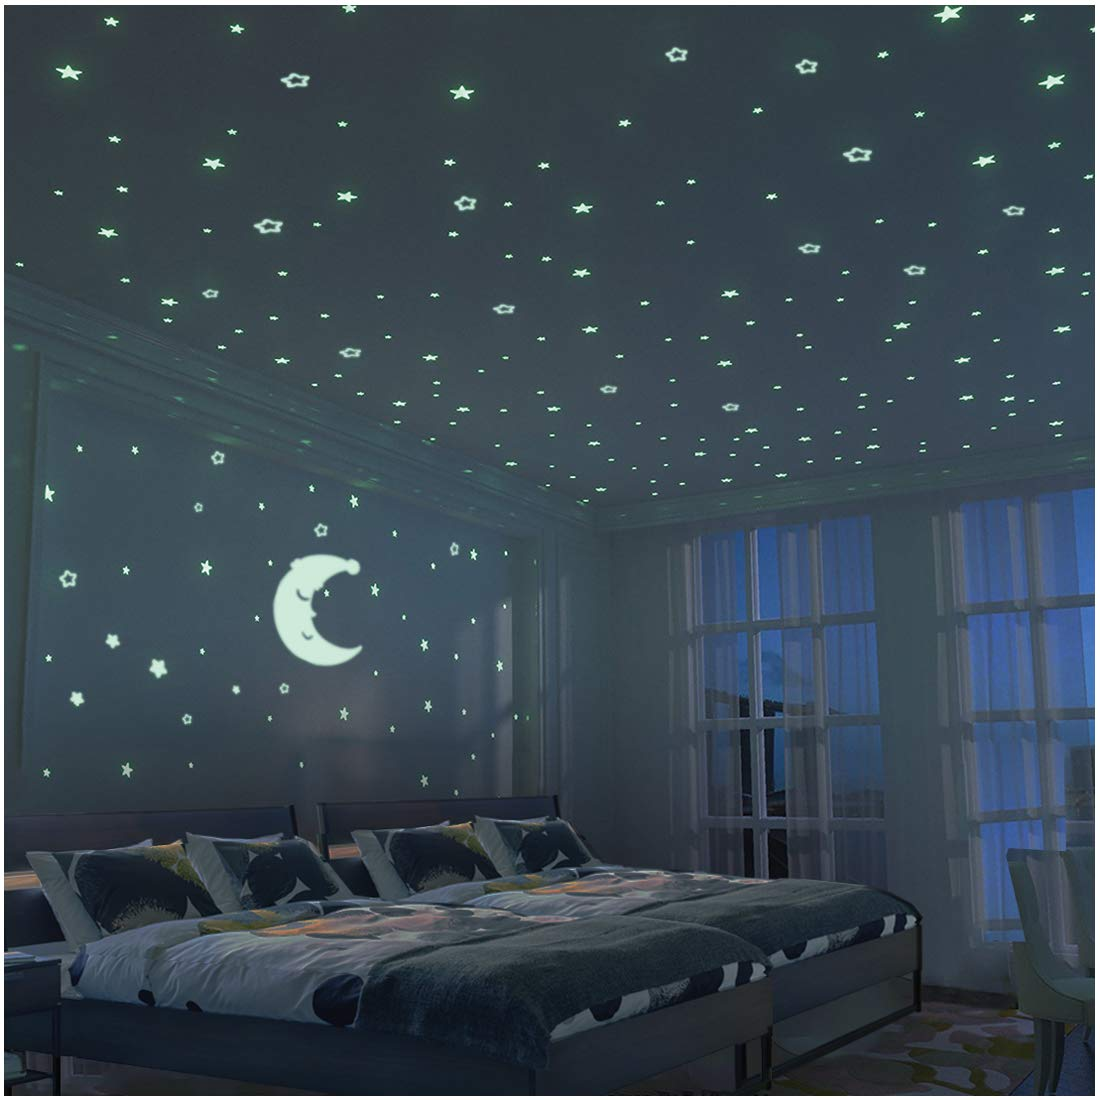 Glow in The Dark Moon and Stars - 300PCS - 9.4'' Large Moon and Various Size Fluorescent Stars for Ceiling Decoration in Kids Room by FRETOD (Image #1)